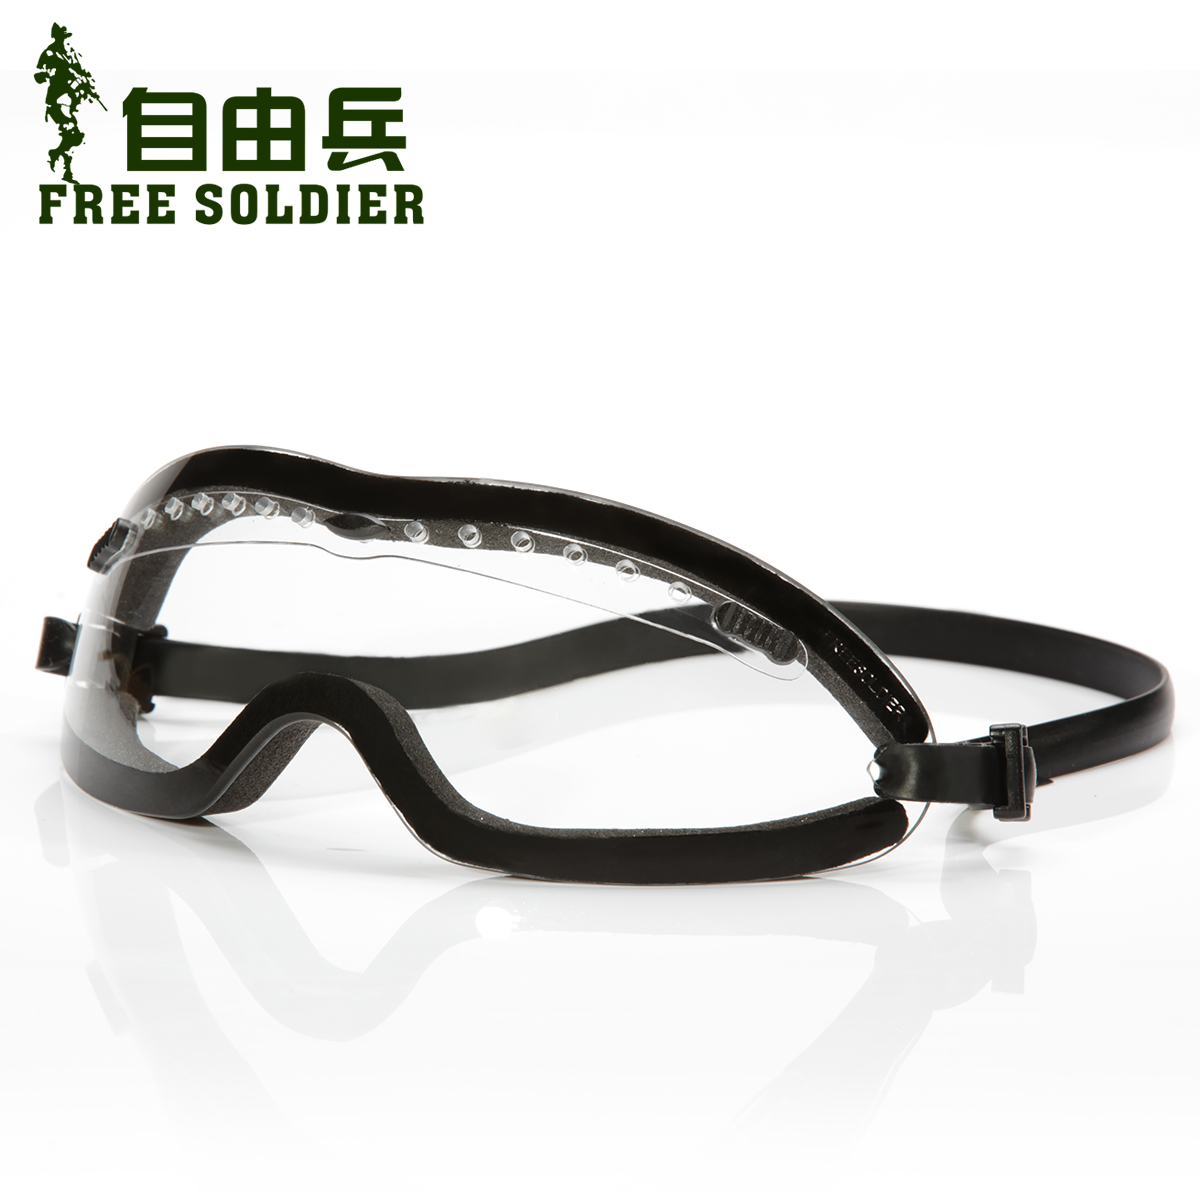 Guardhouses outdoor riding eyewear windproof sand motorcycle goggles cycling glasses free soldier<br><br>Aliexpress